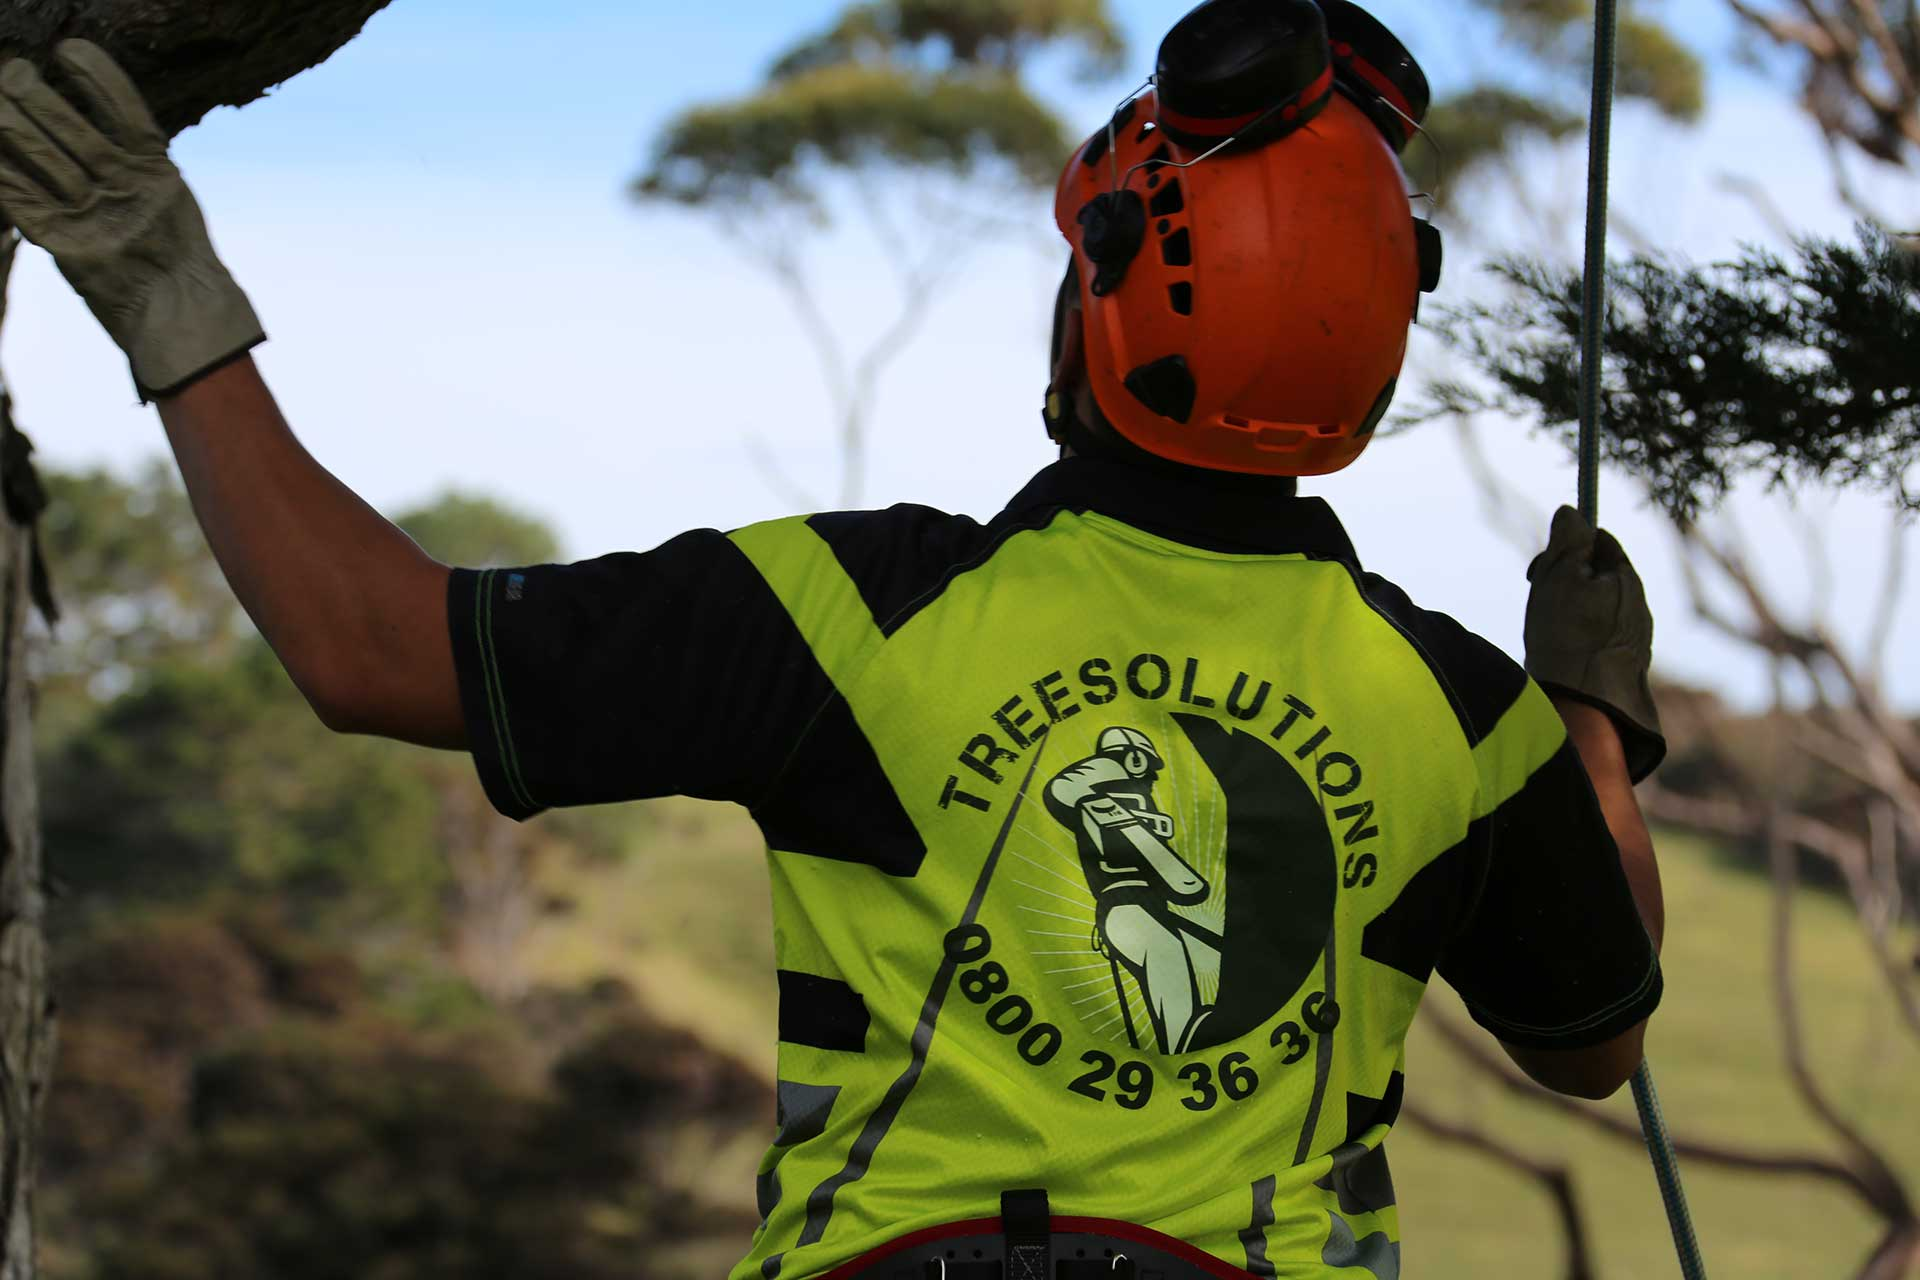 Qualified Arborist team